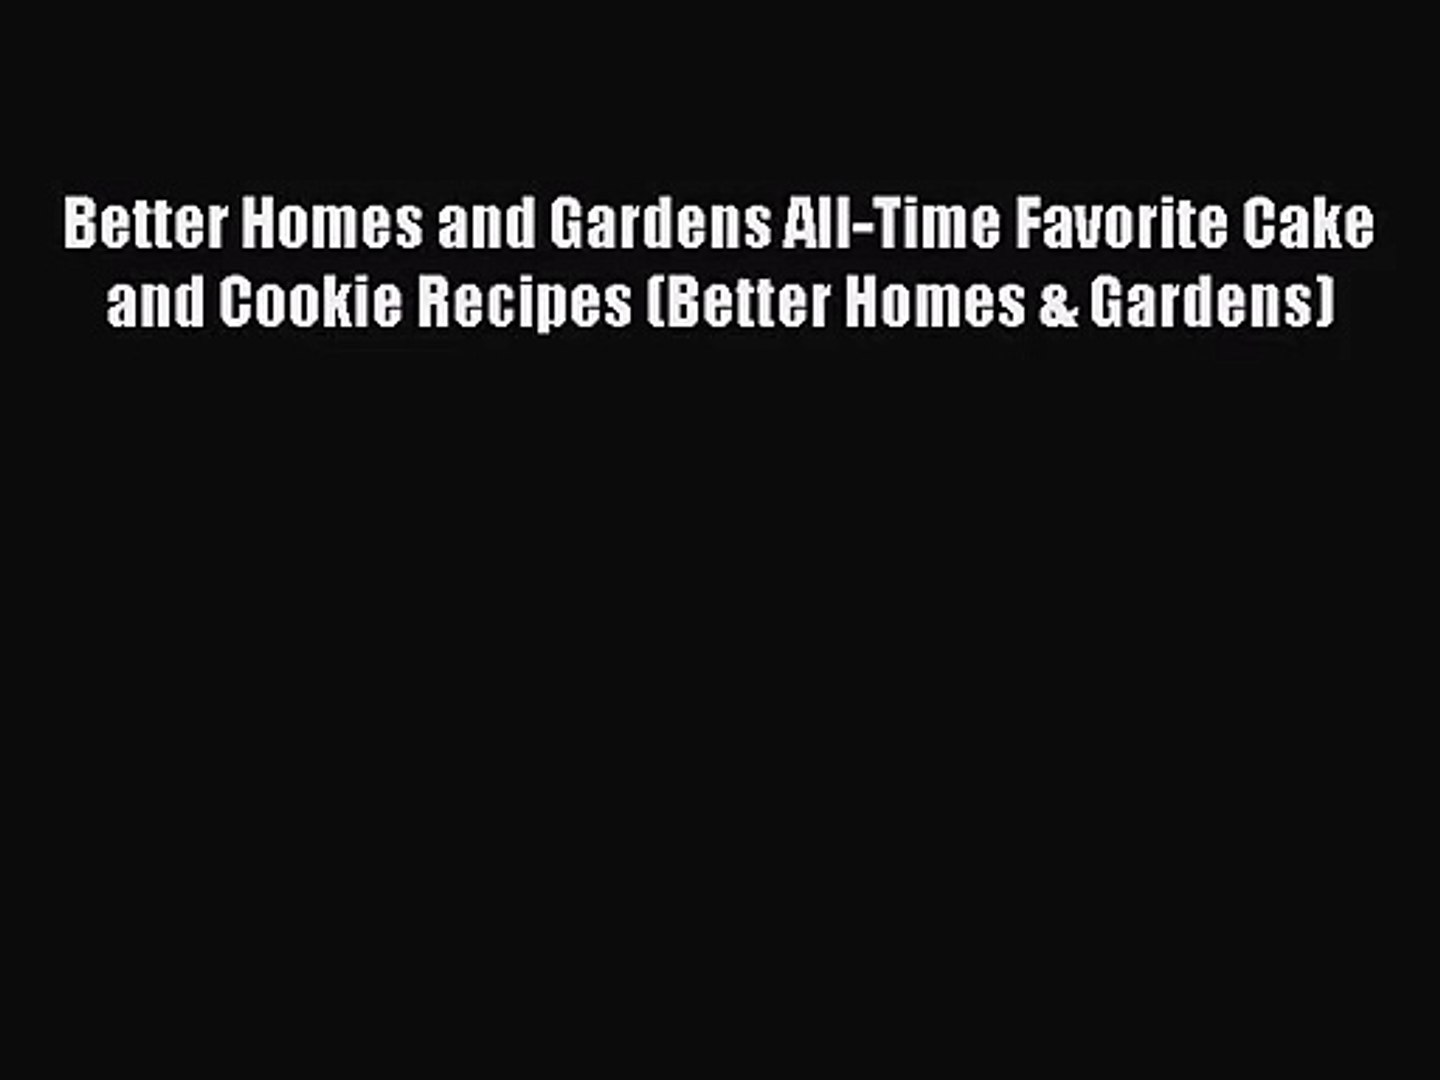 Better Homes and Gardens All-Time Favorite Cake and Cookie Recipes (Better Homes & Gardens)